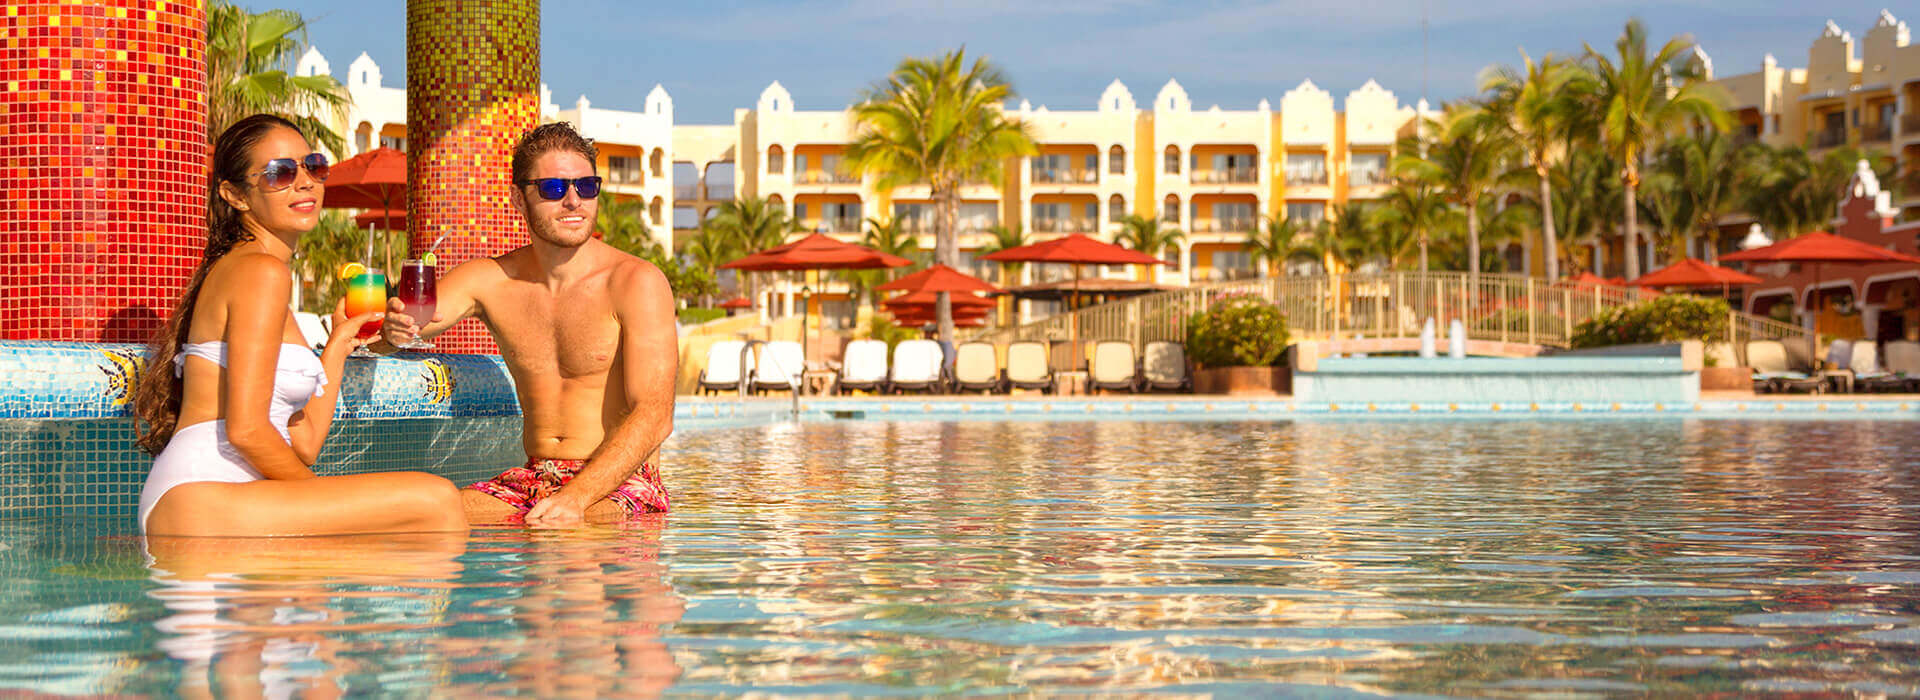 best resort for couples in Riviera Maya